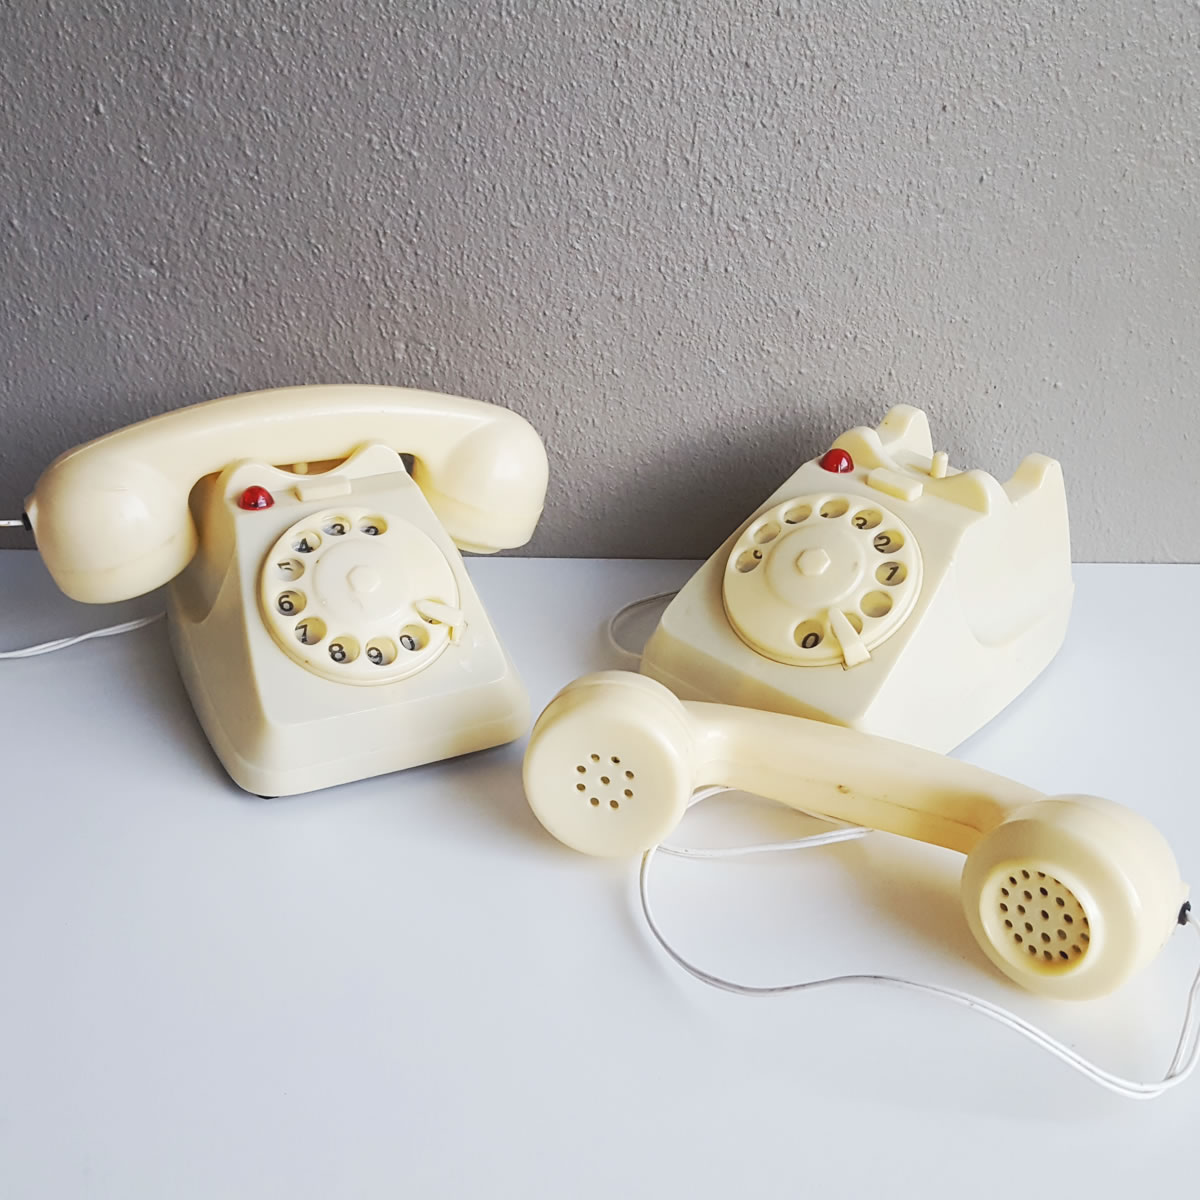 2 Vintage Rotary Phones Walkie Talkie | | Old is the new new